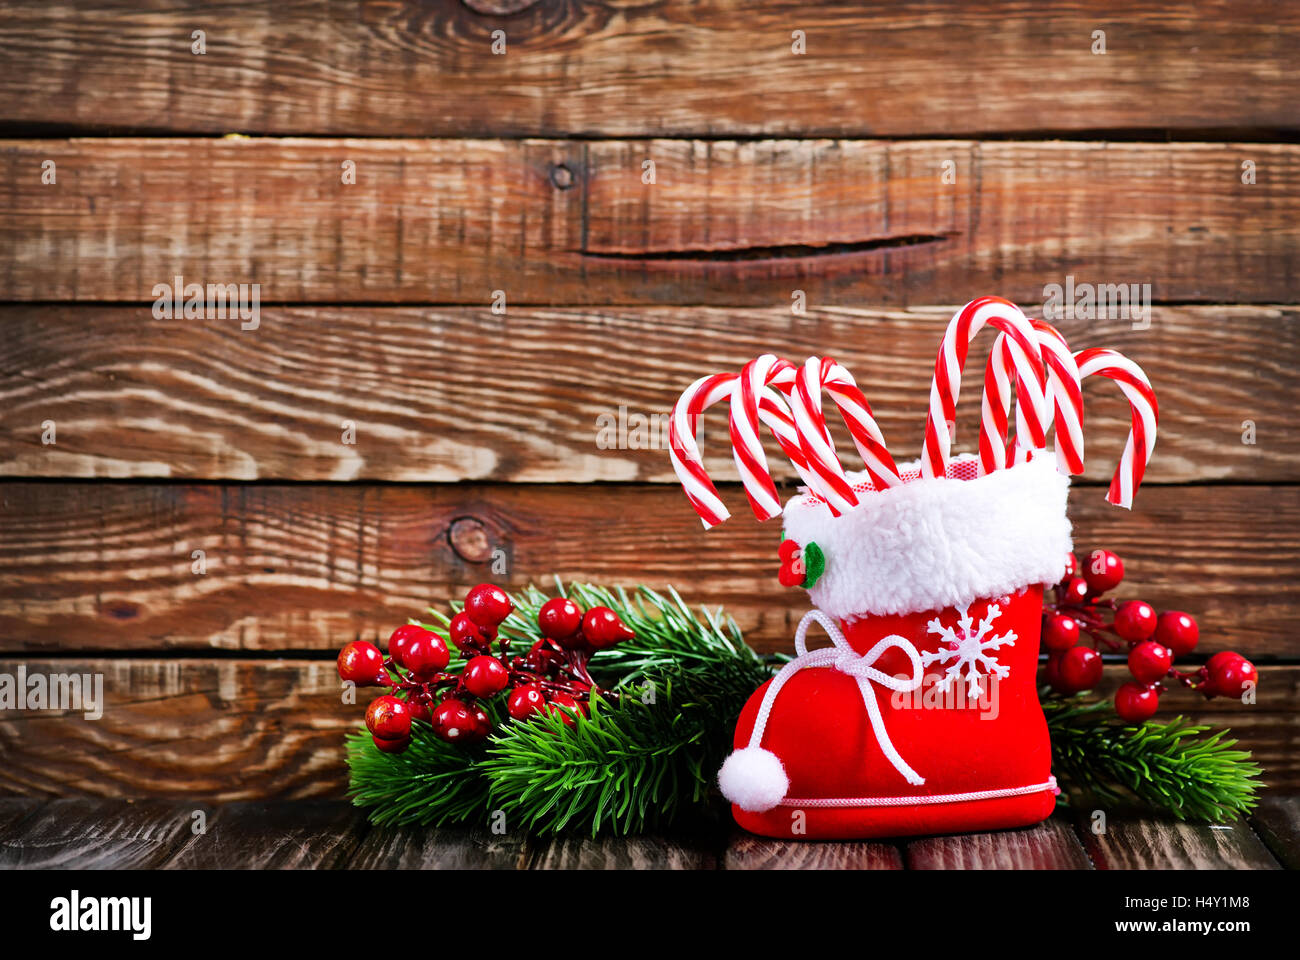 Candy Canes And Christmas Decoration On A Table Stock Photo